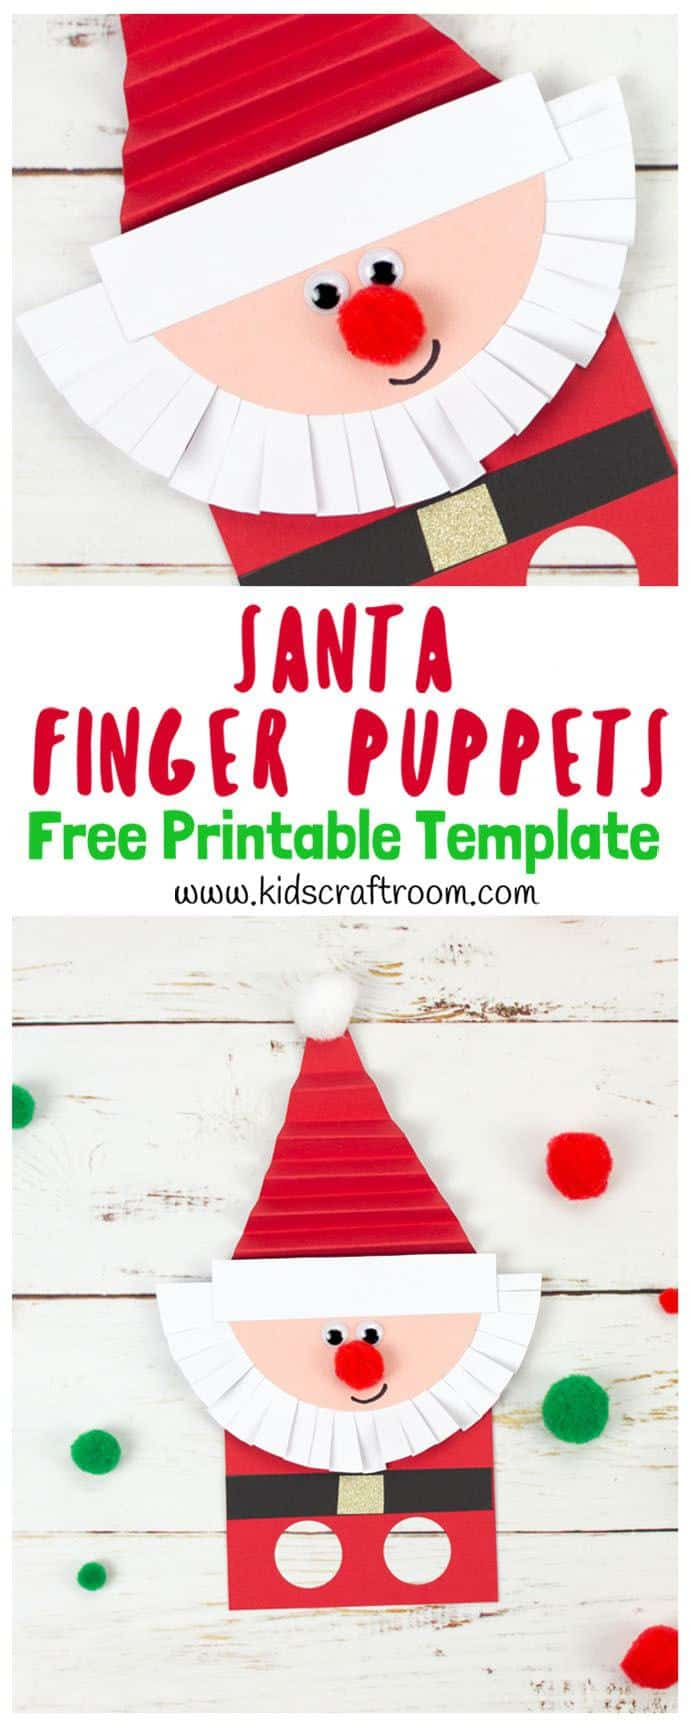 Download the free Santa Finger Puppet Template to make the cutest Santa puppets. A fun interactive Christmas craft for kids to encourage imaginative play and story telling. This Santa craft has concertina folded hats and scissor cut beards which gives lots of opportunity for kids to develop their fine motor skills too. #santa #santacrafts #christmas #christmascrafts #kidscrafts #papercrafts #printables #puppets #fingerpuppets #kidscraftroom